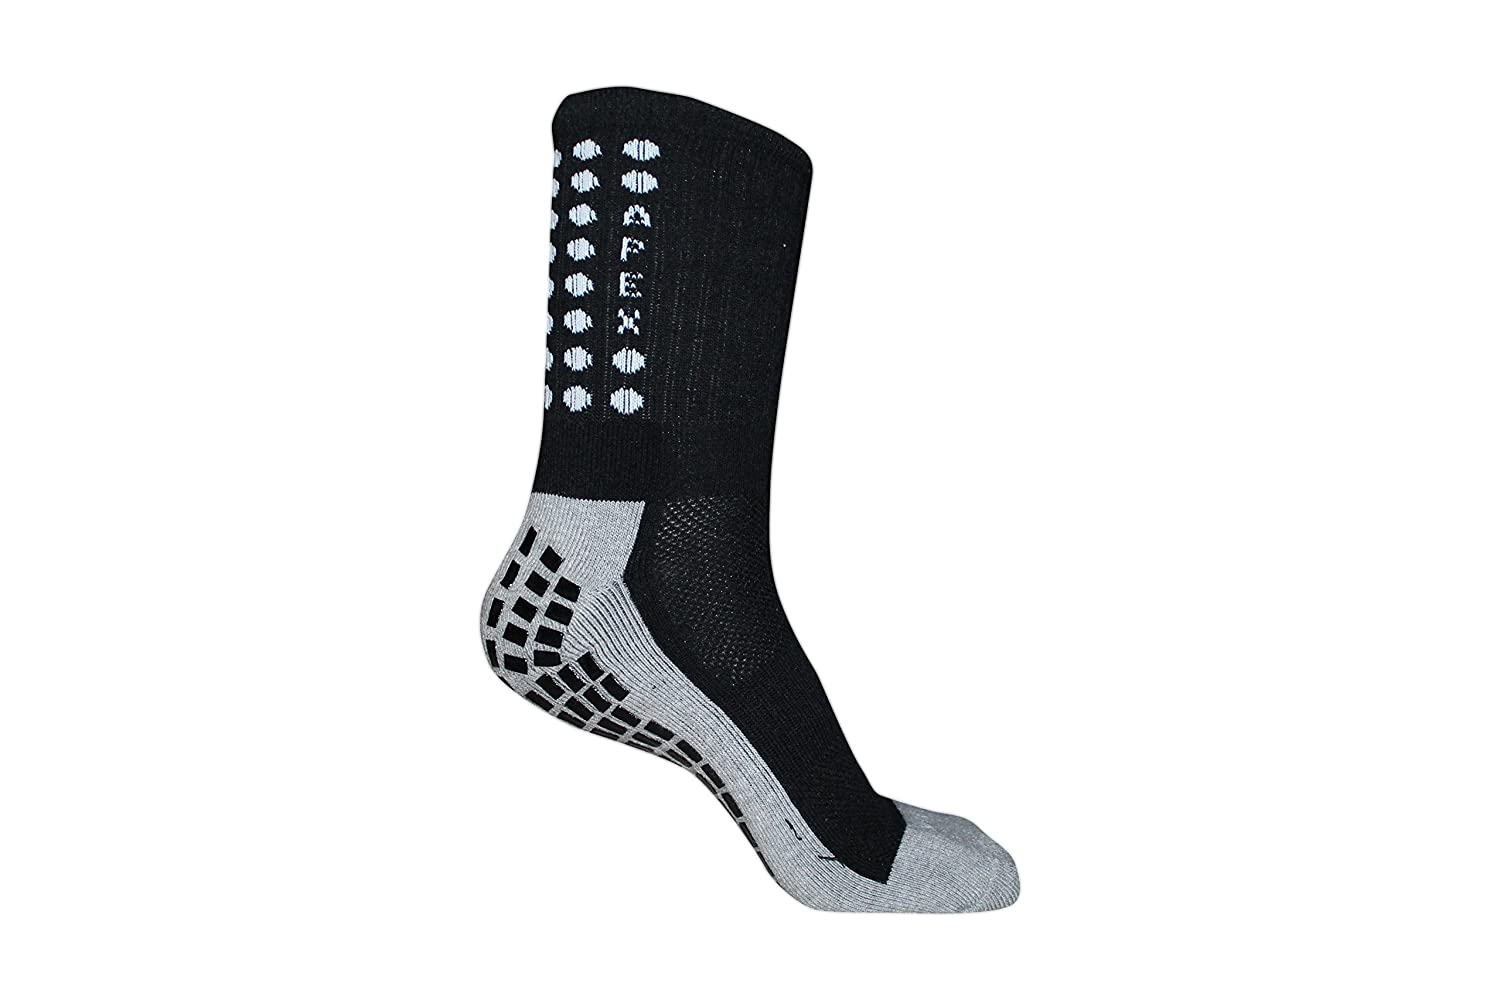 #1 Non Slip Sport Socks, The Best Traction Technology Inside And Outside Of Socks, No More Blisters, Grip Socks by Apex